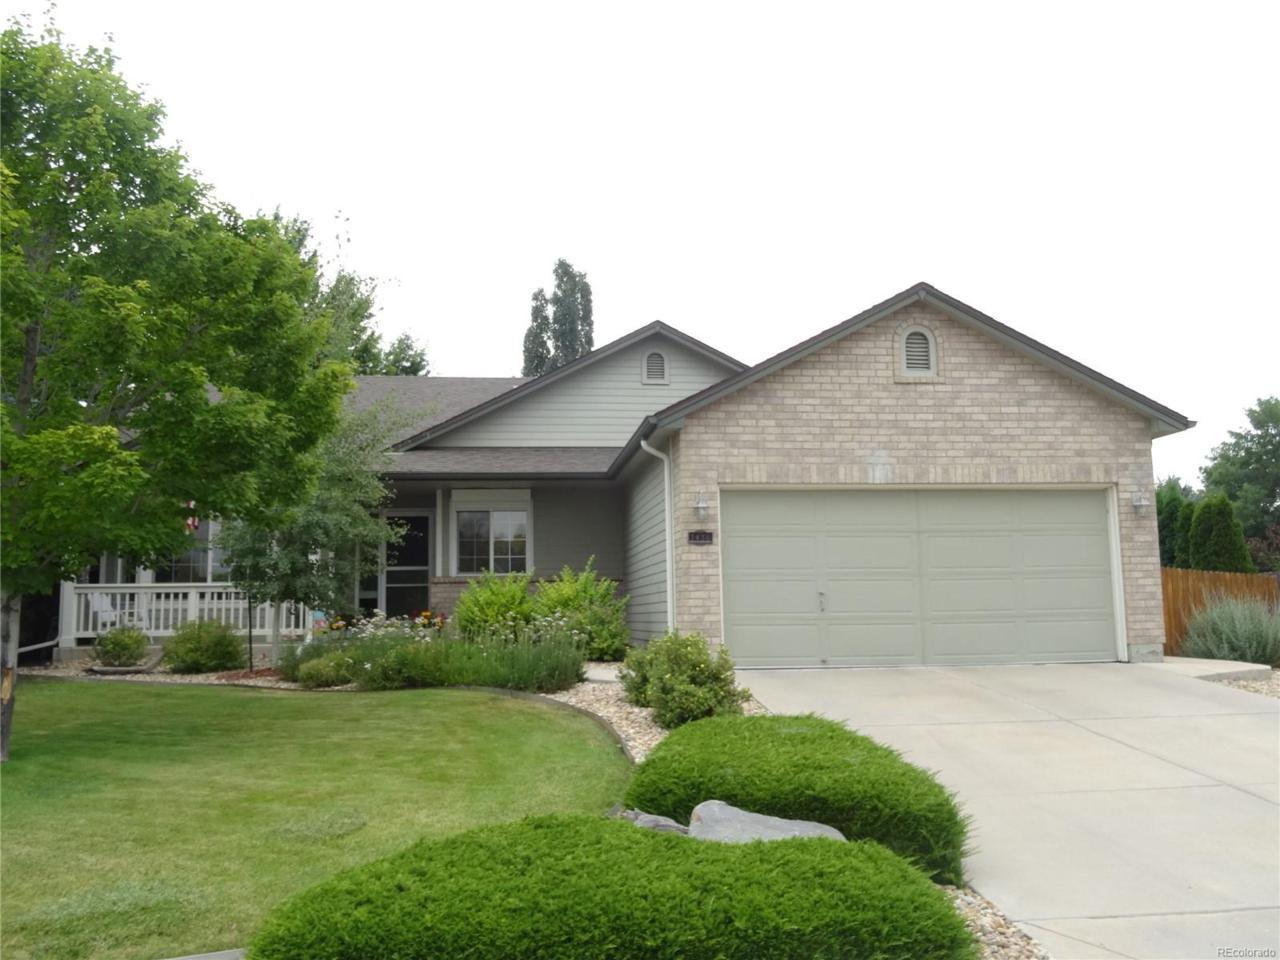 1436 Deerwood Drive, Longmont, CO 80504 (MLS #4859178) :: 8z Real Estate